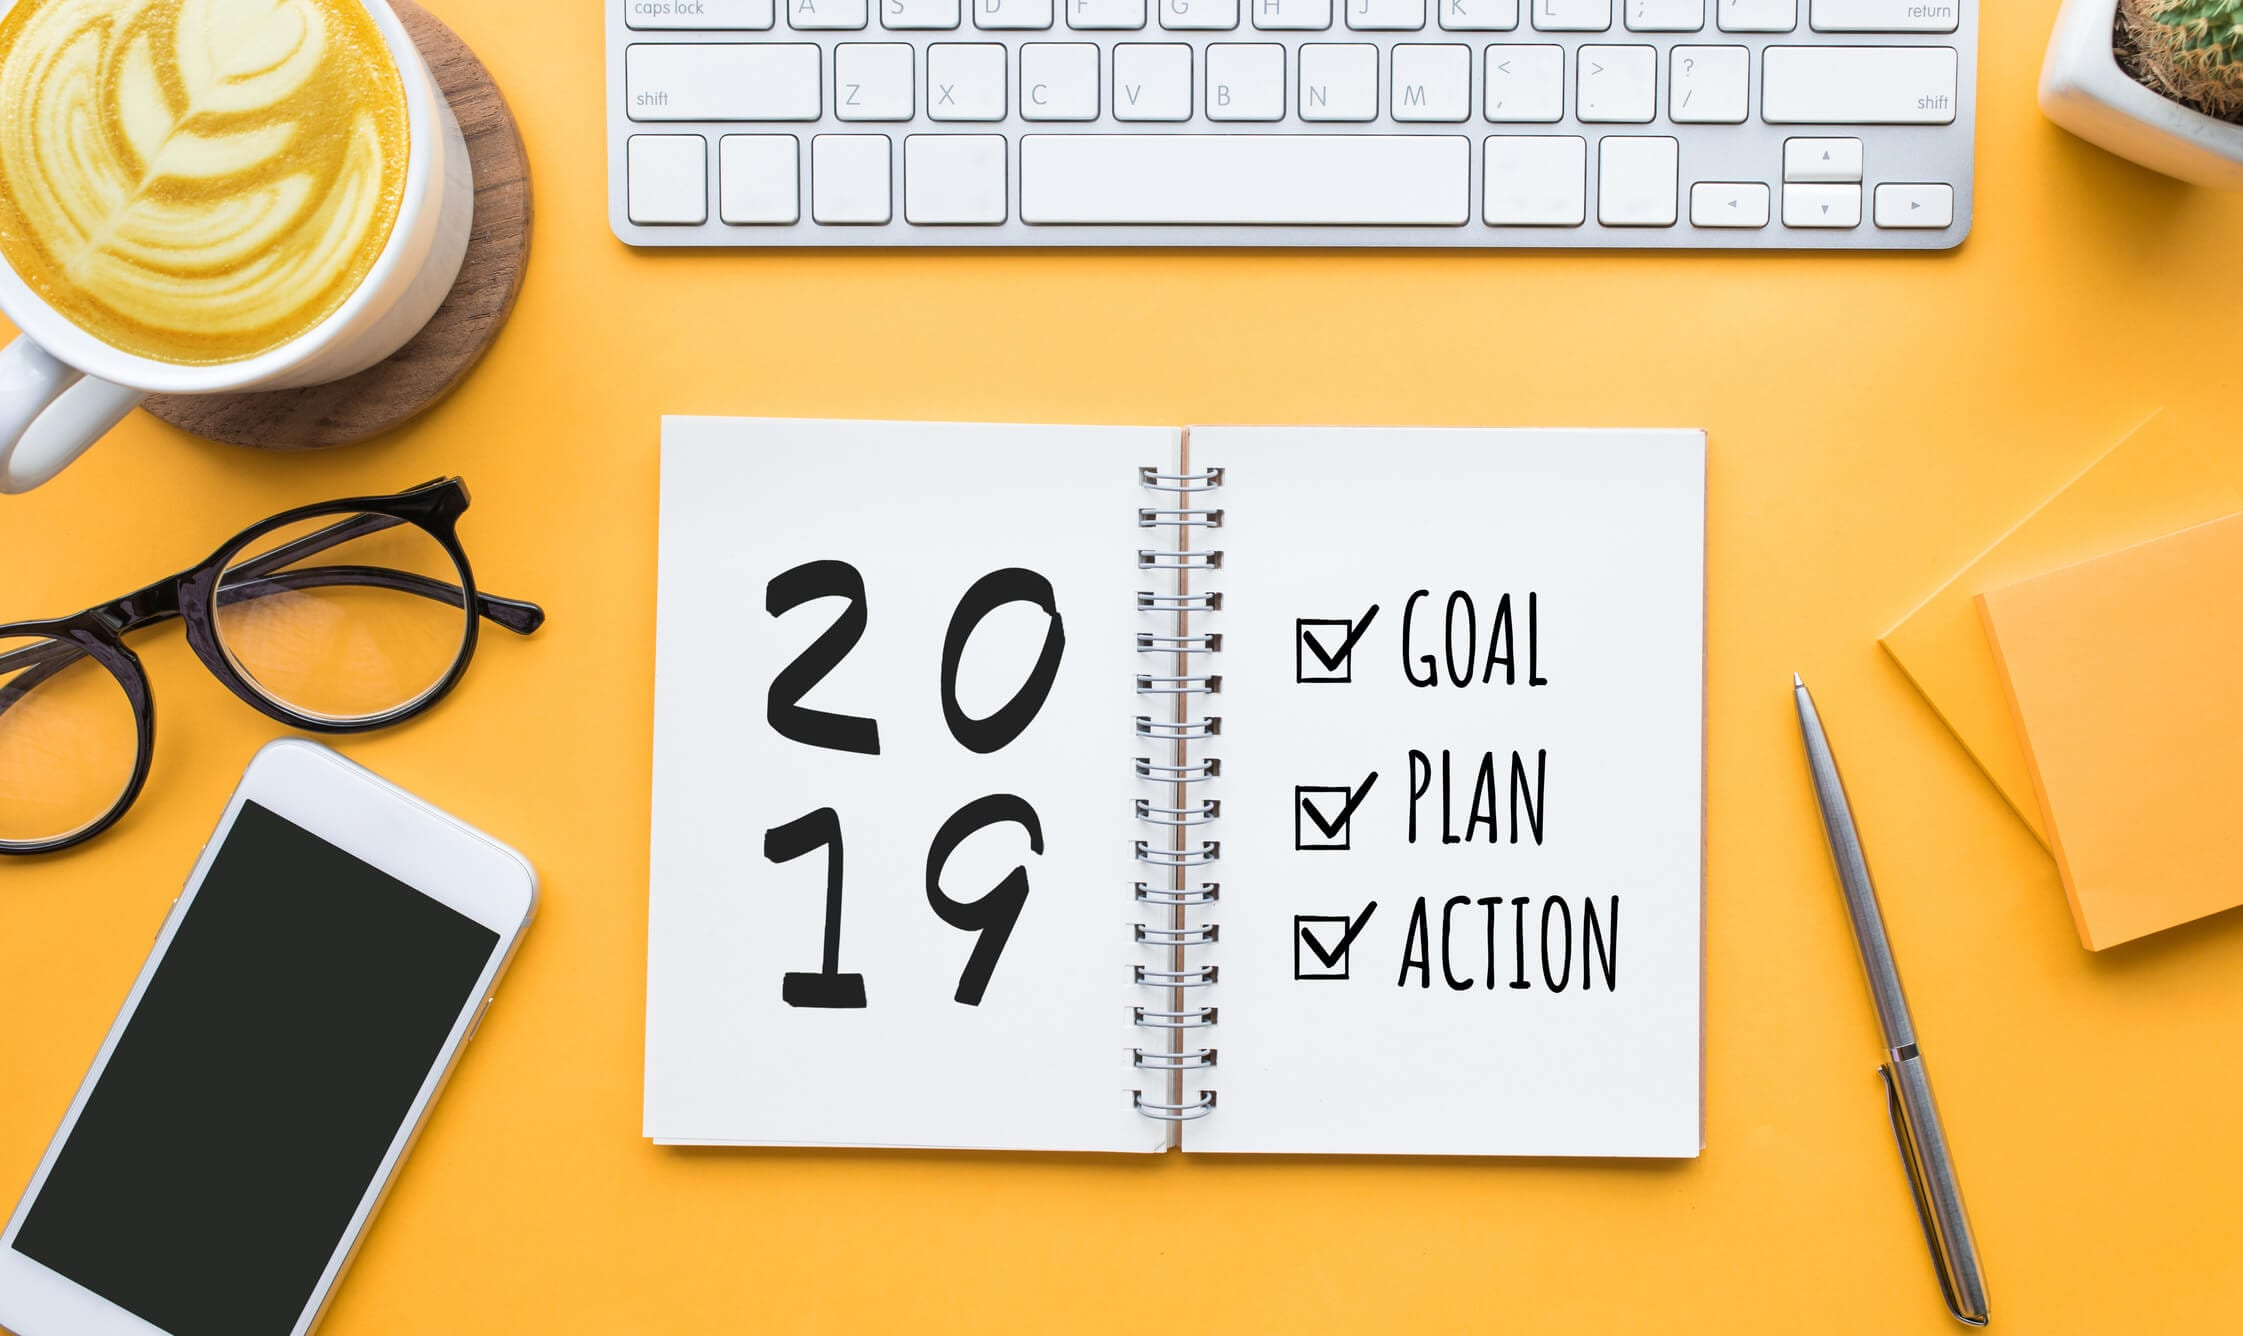 19 ways to set your 2019 on FIYA! 1/19